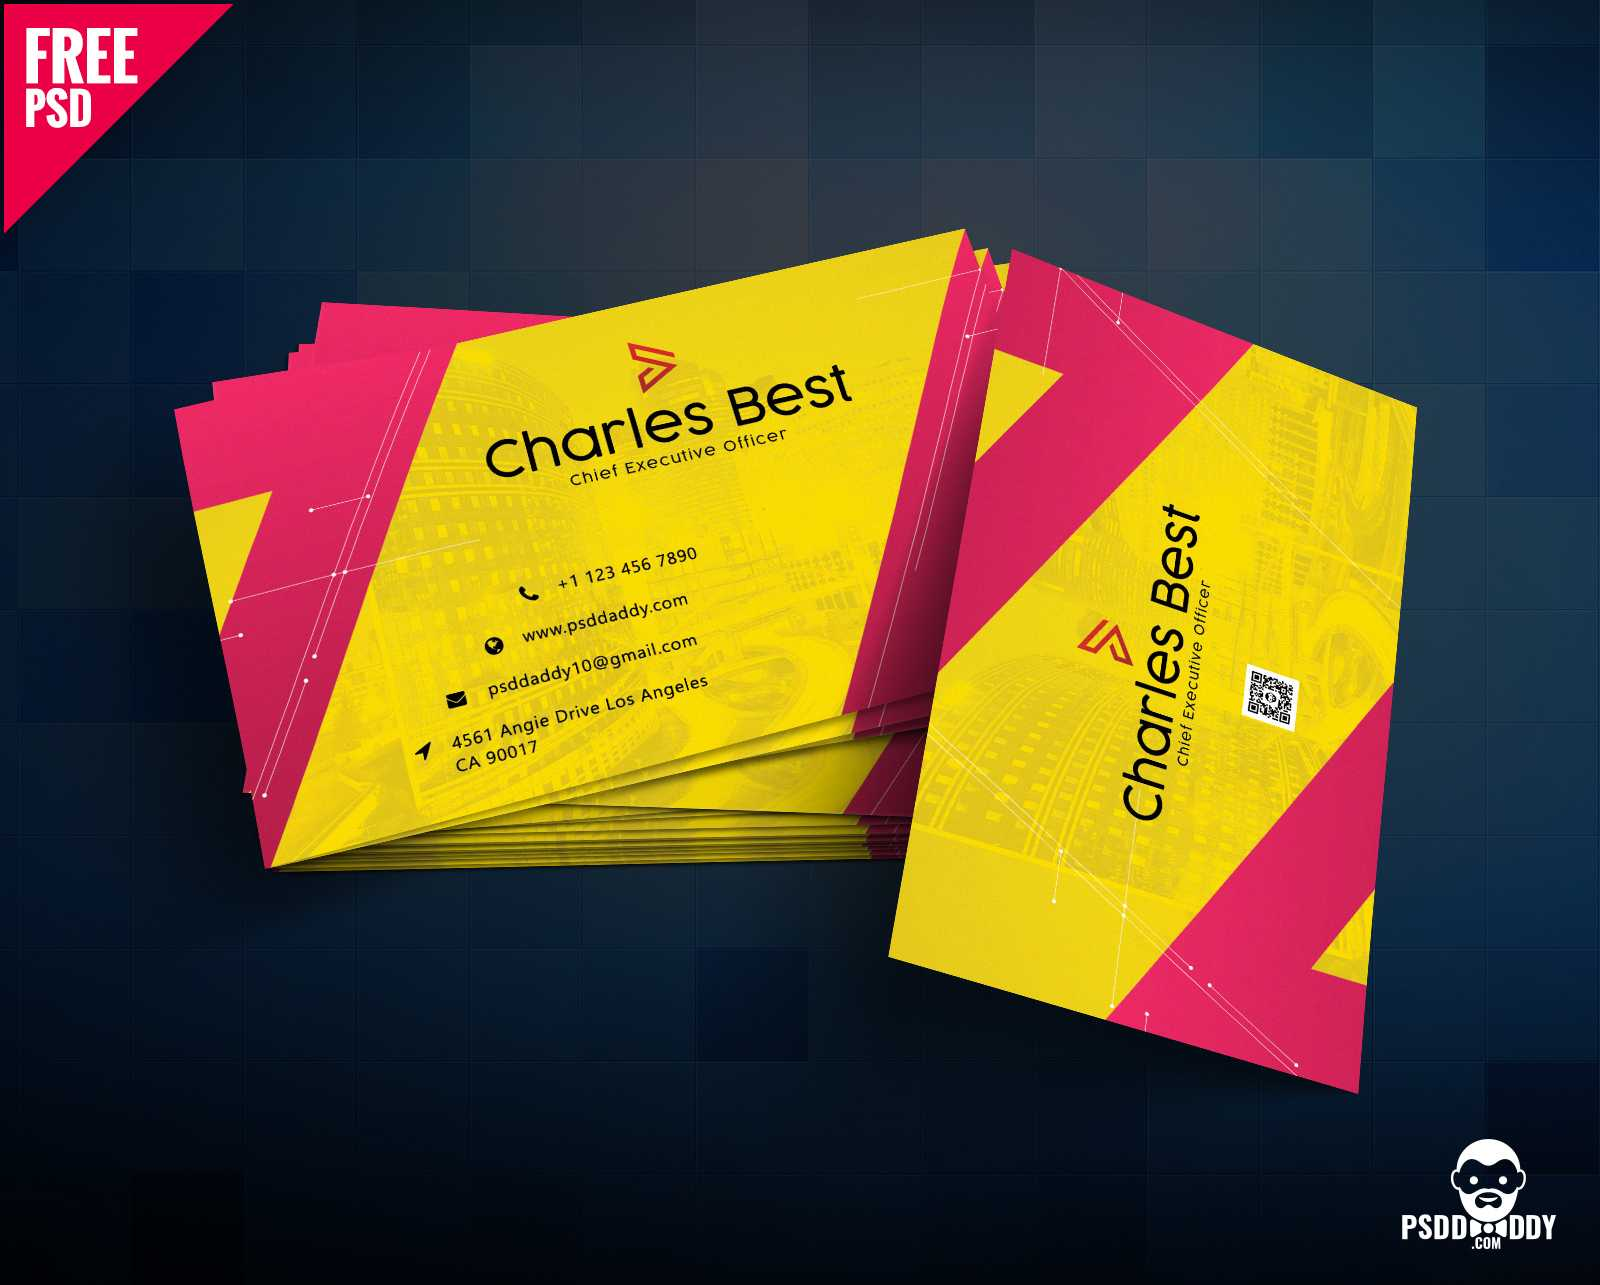 Download] Creative Business Card Free Psd | Psddaddy for Free Psd Visiting Card Templates Download